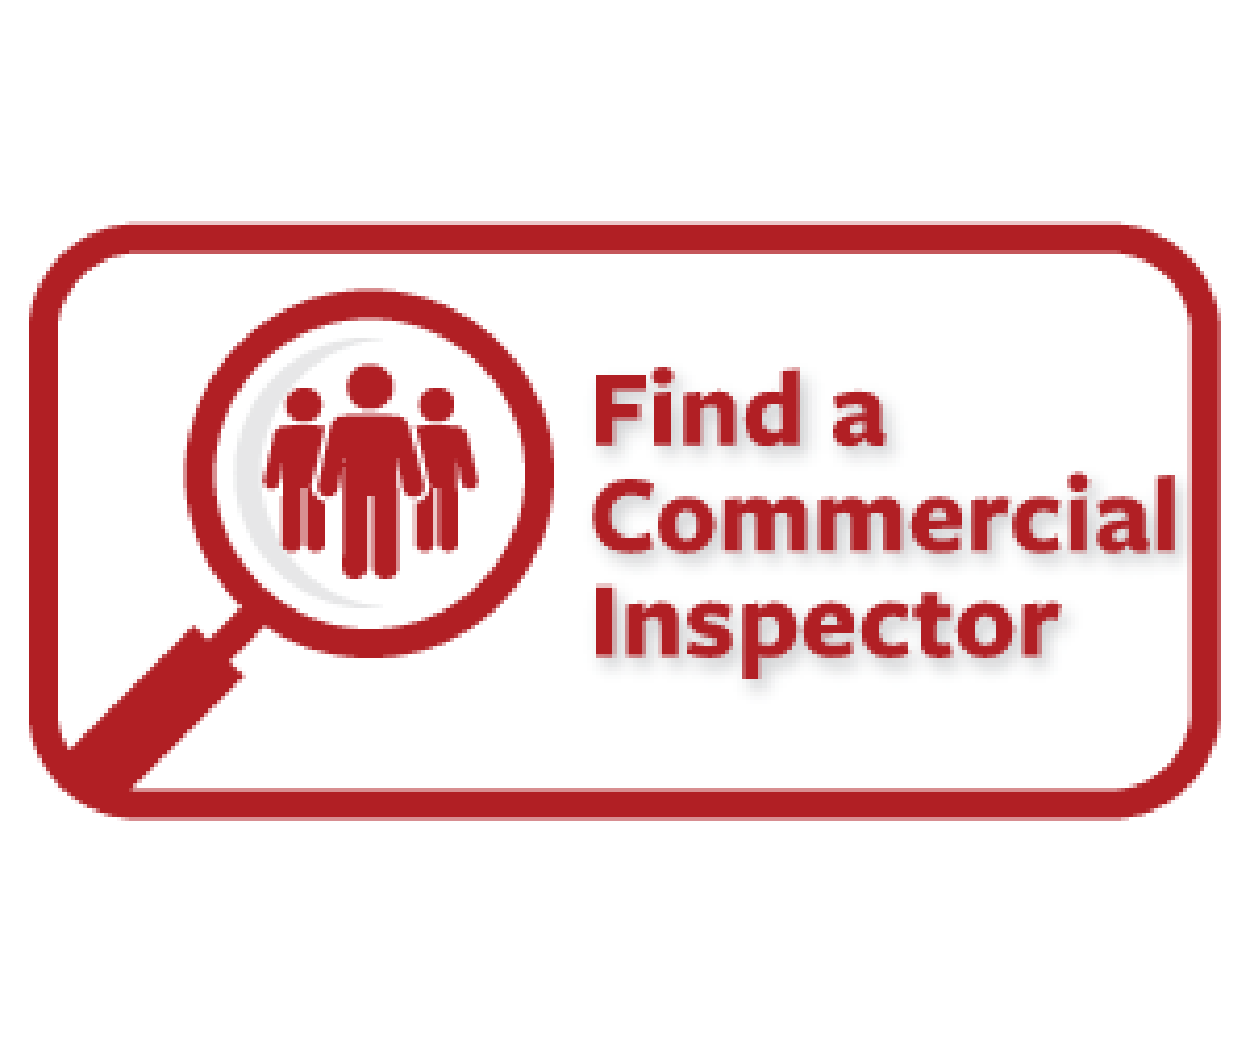 Find a Commercial Inspector